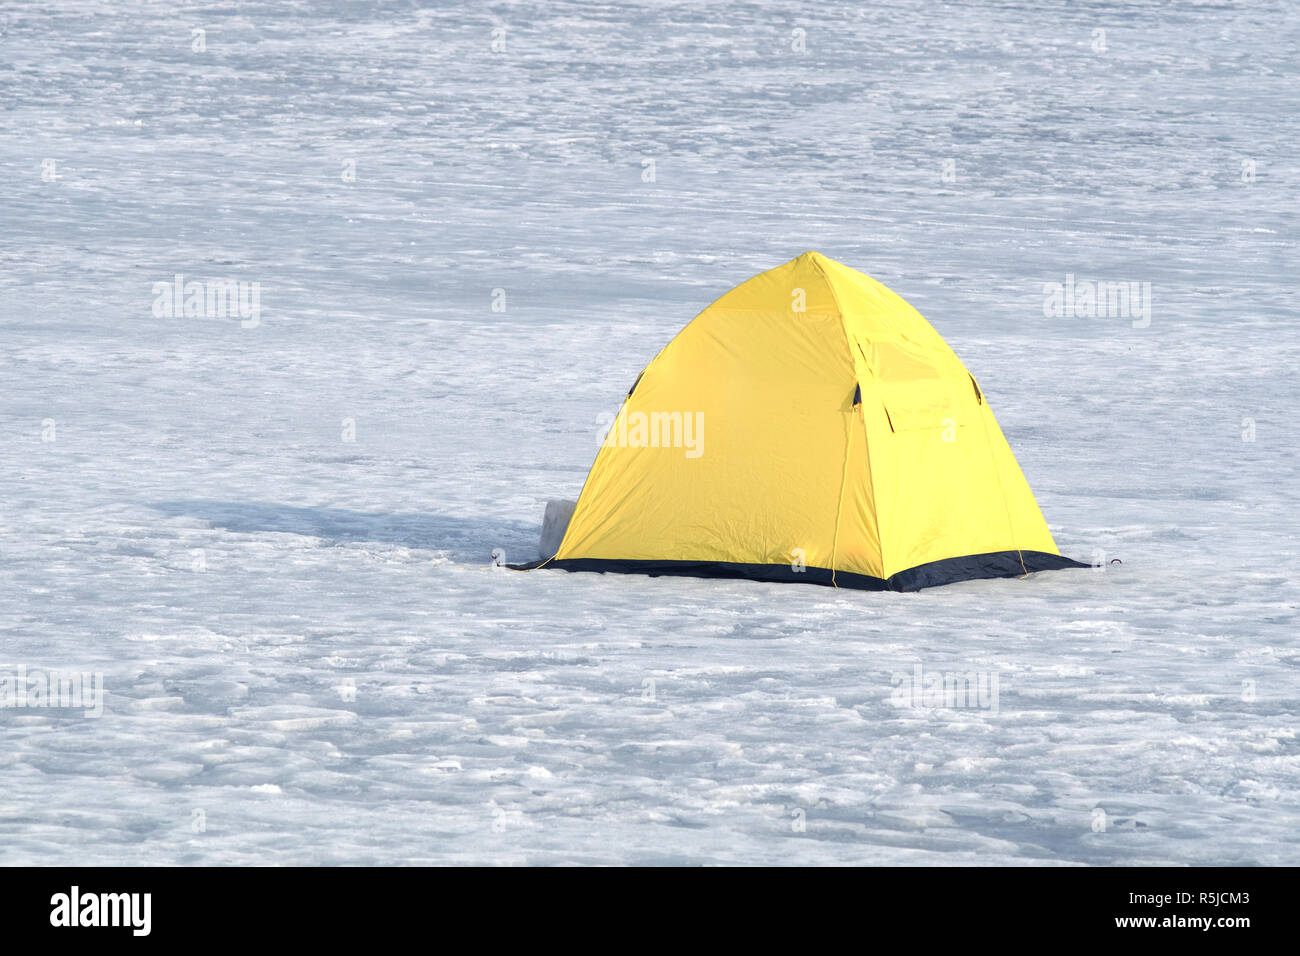 Winter fishing. Fisherman tent from yellow with black bottom in snow on frozen river in winter day closeup - Stock Image